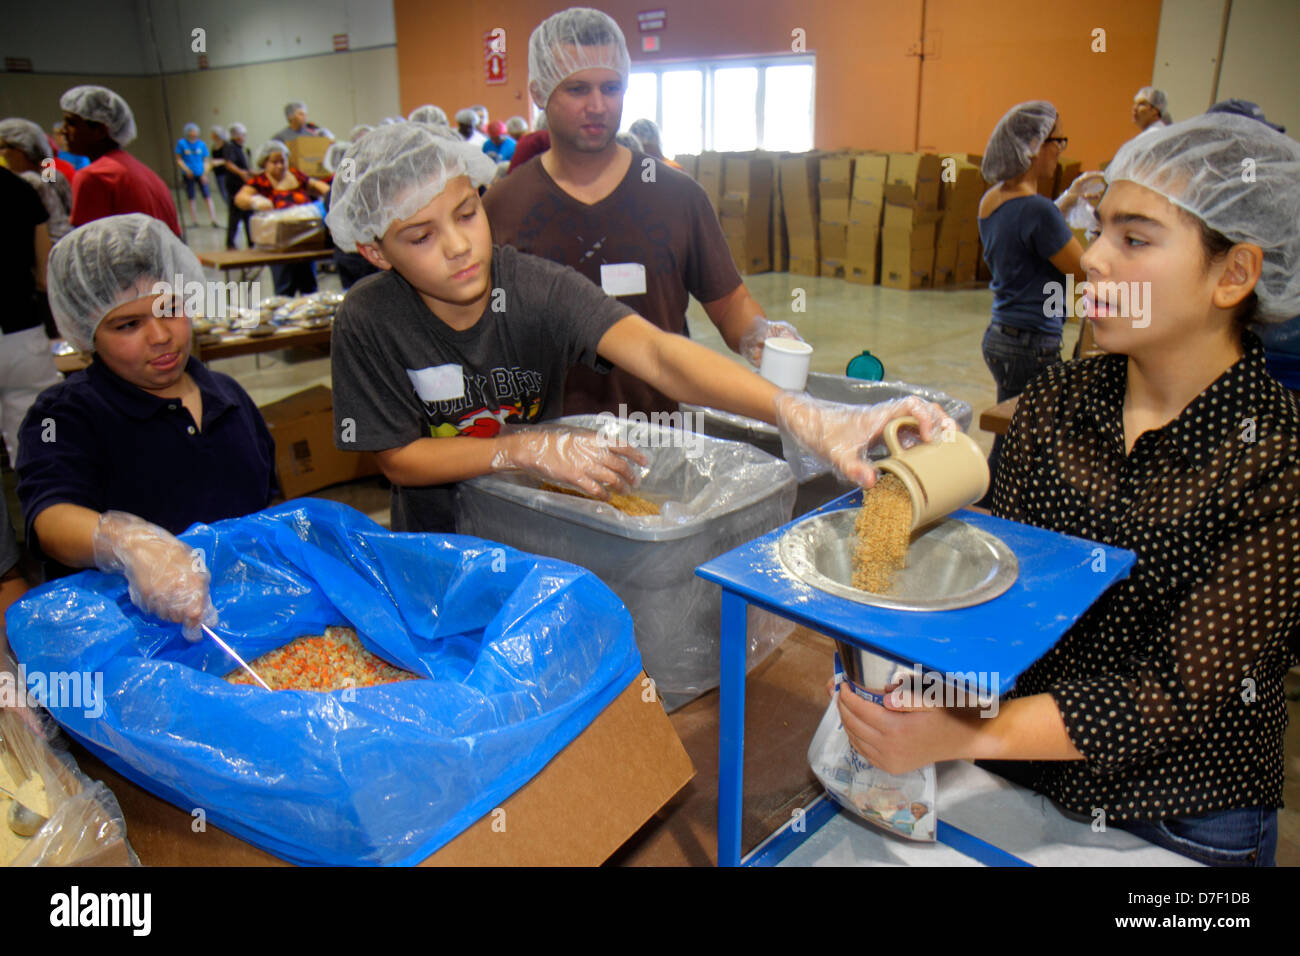 MiamiMiami Florida-Dade County Fair And Expo Feed My Starving Children volunteer community service packing meals - Stock Image